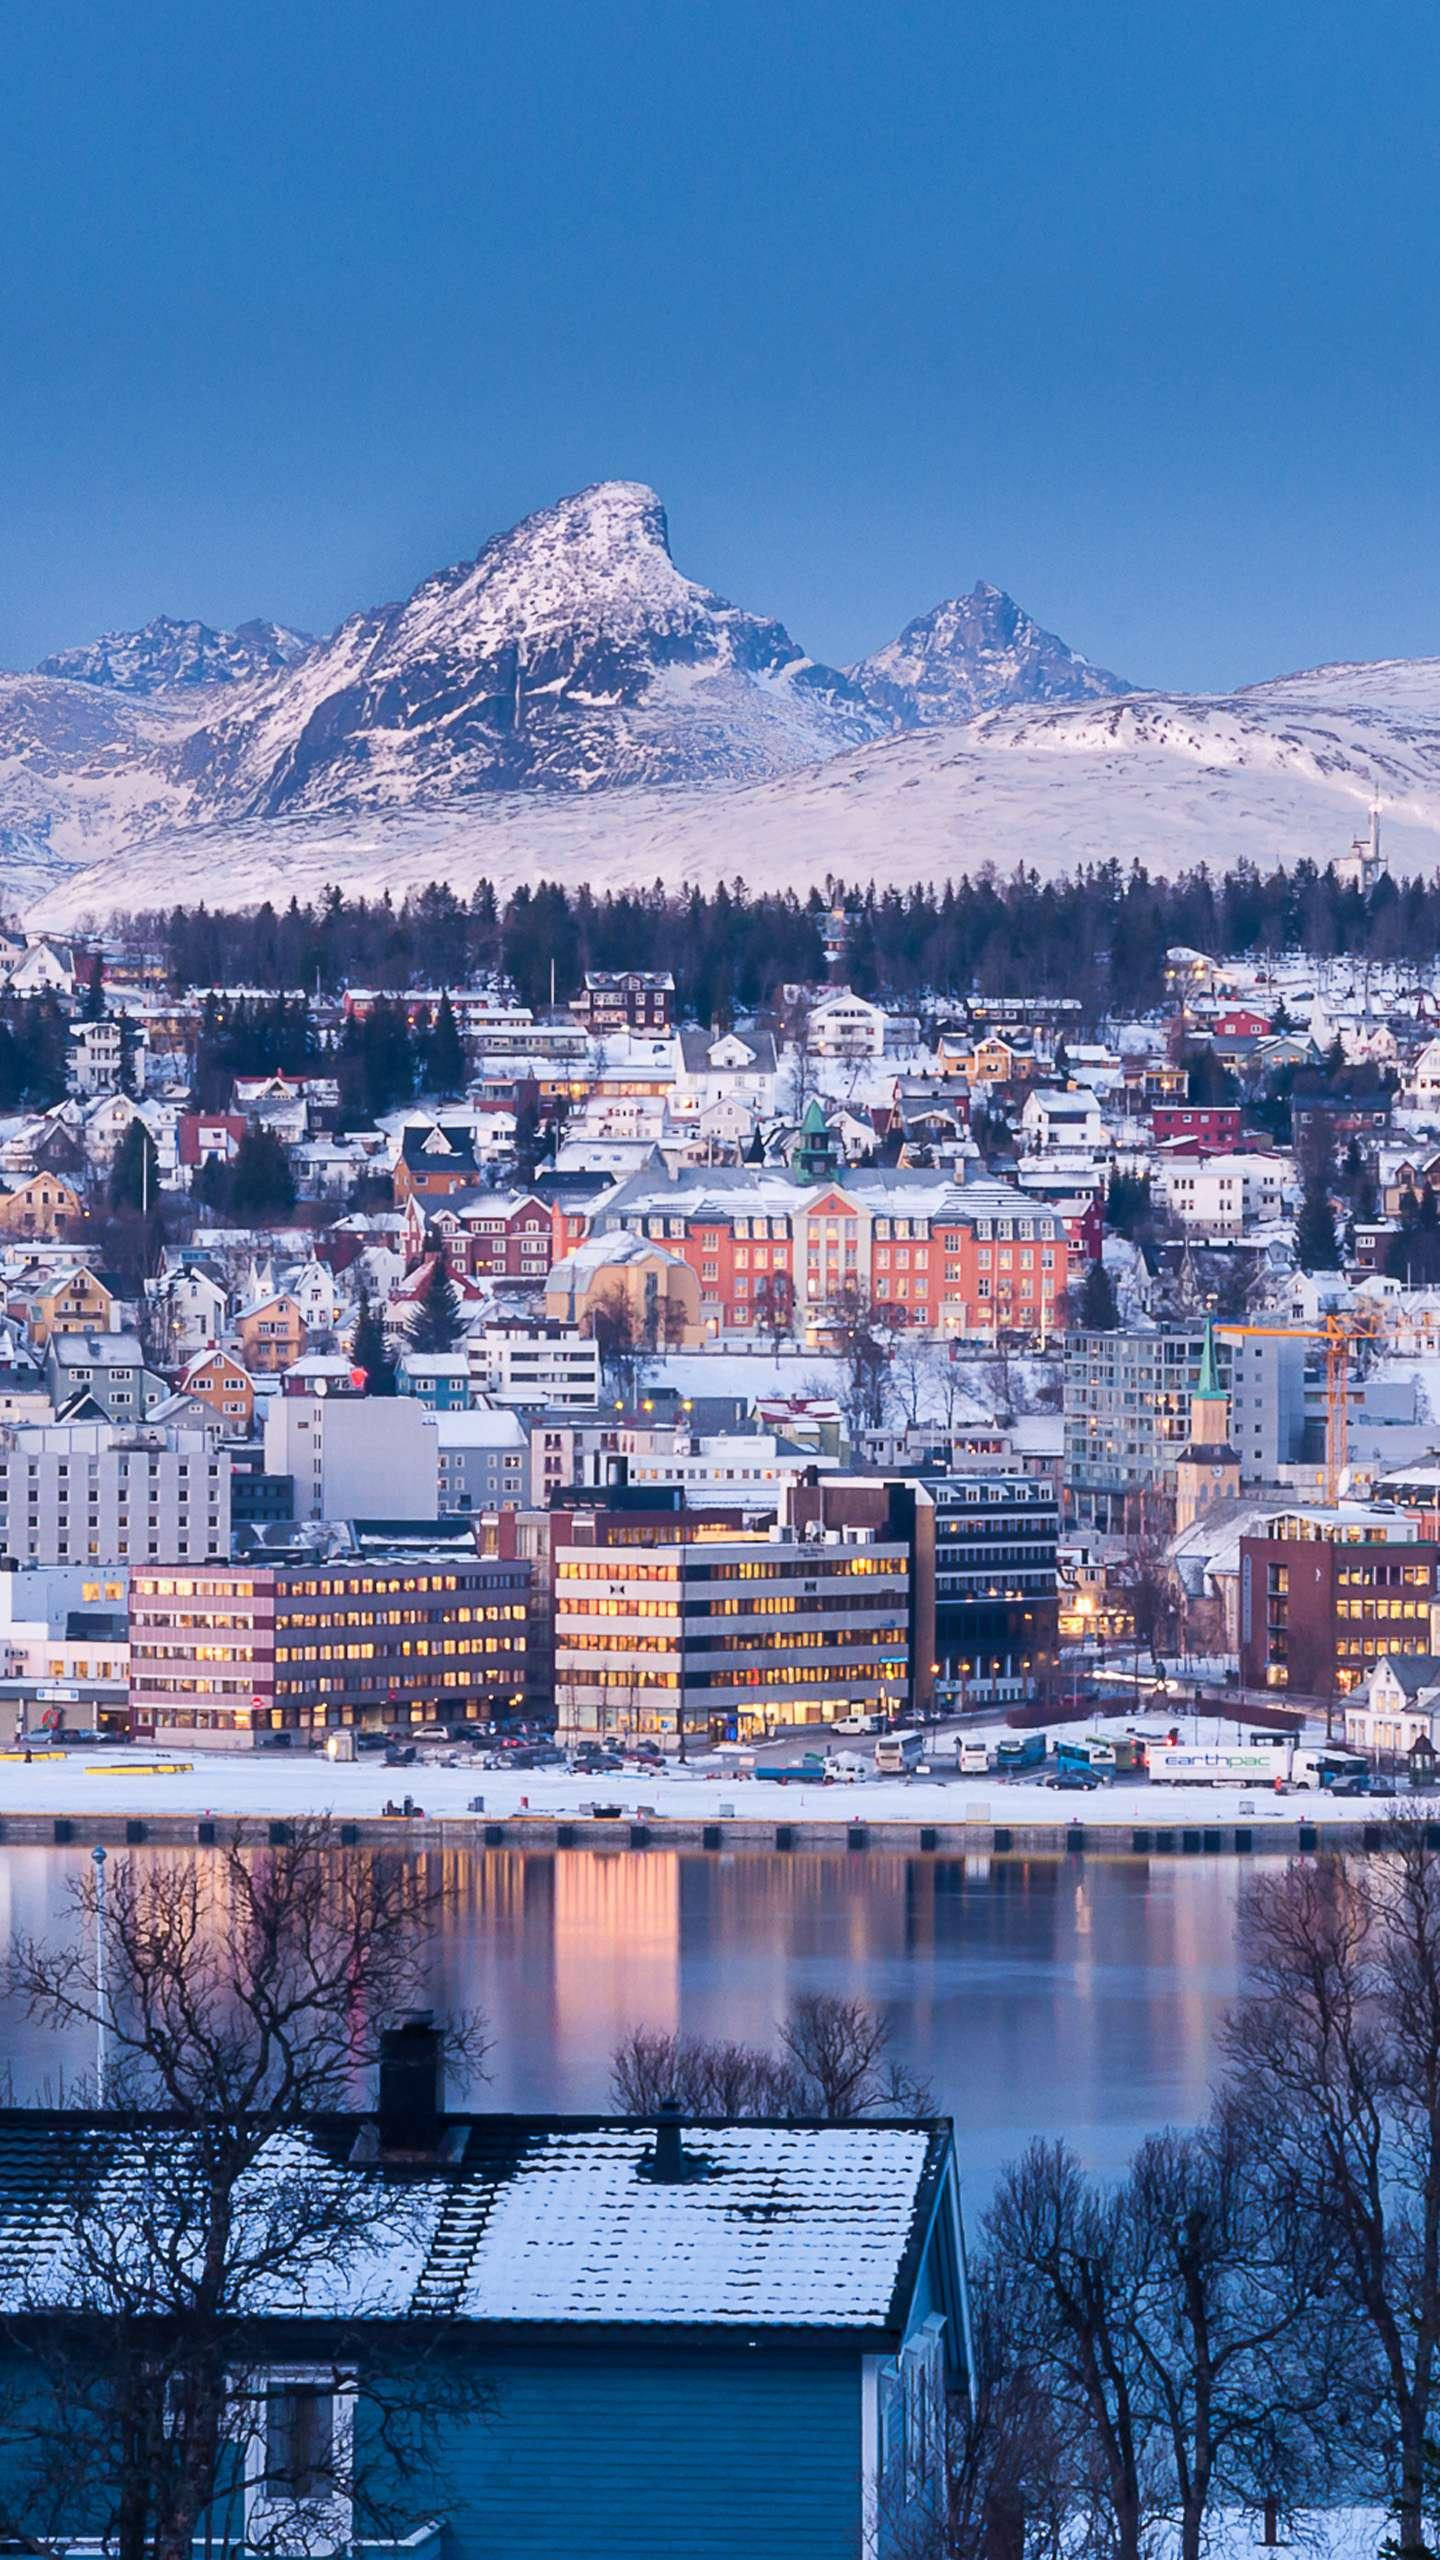 Norway - Tromsø. The largest port city in northern Norway, due to the passage of the North Atlantic warm current, is not frozen in winter, is a year-round non-freezing port.